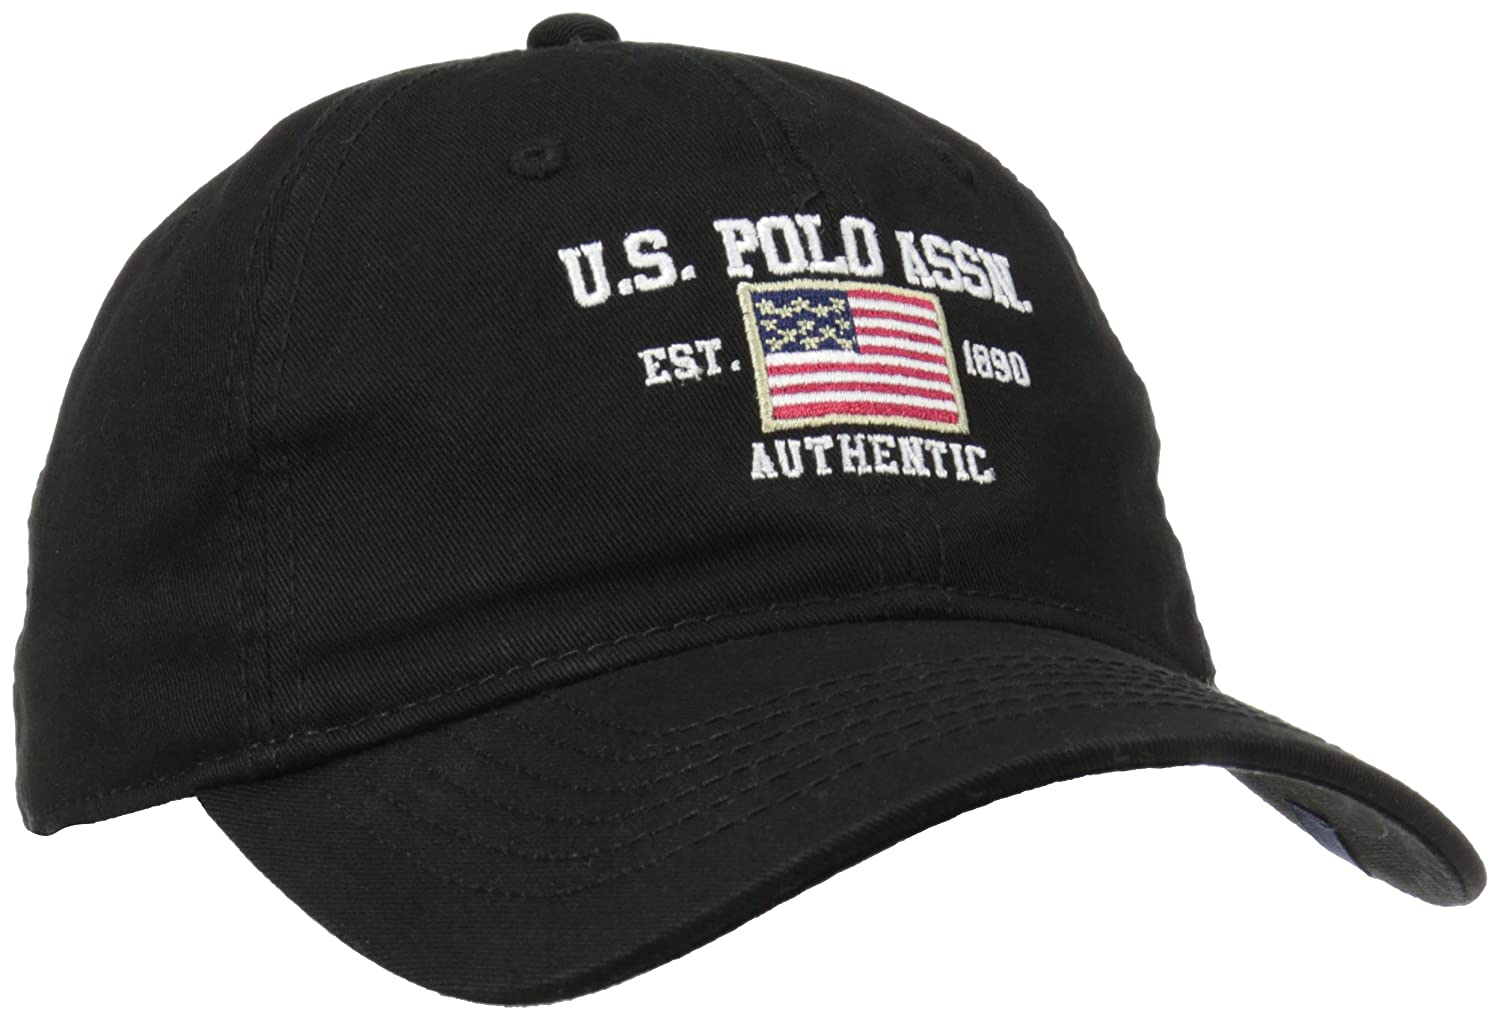 4e2f99227cbb7 U.S. Polo Assn. Men s Us Polo Association Flat Baseball Cap